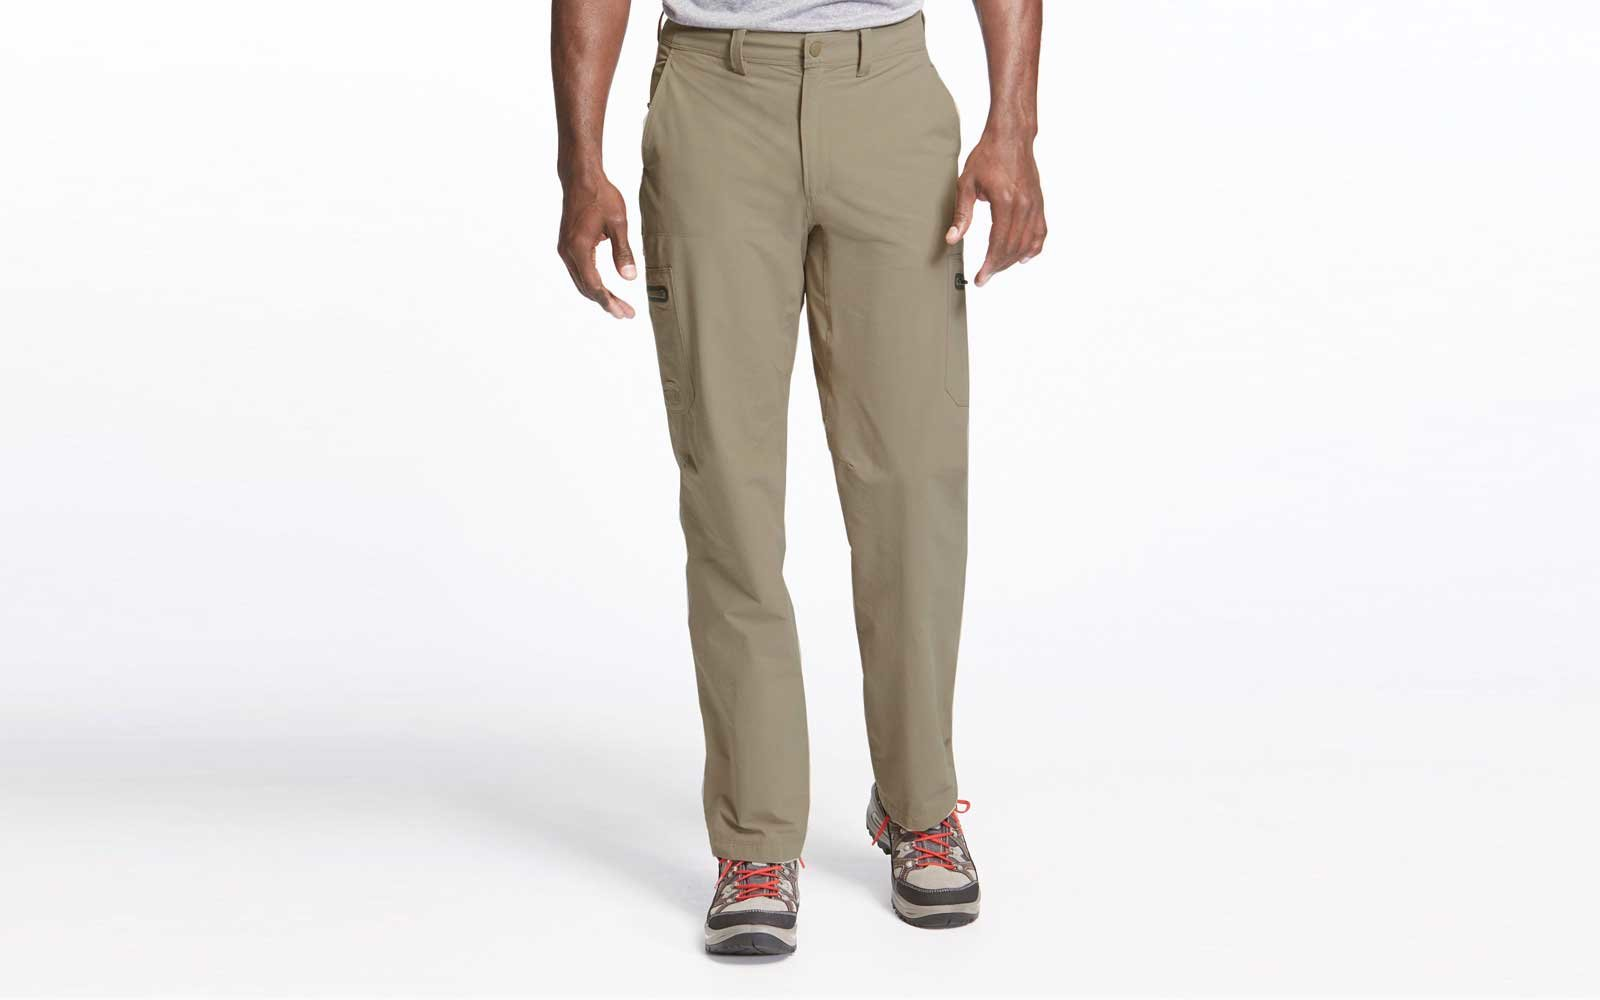 To acquire Hiking stylish pants picture trends